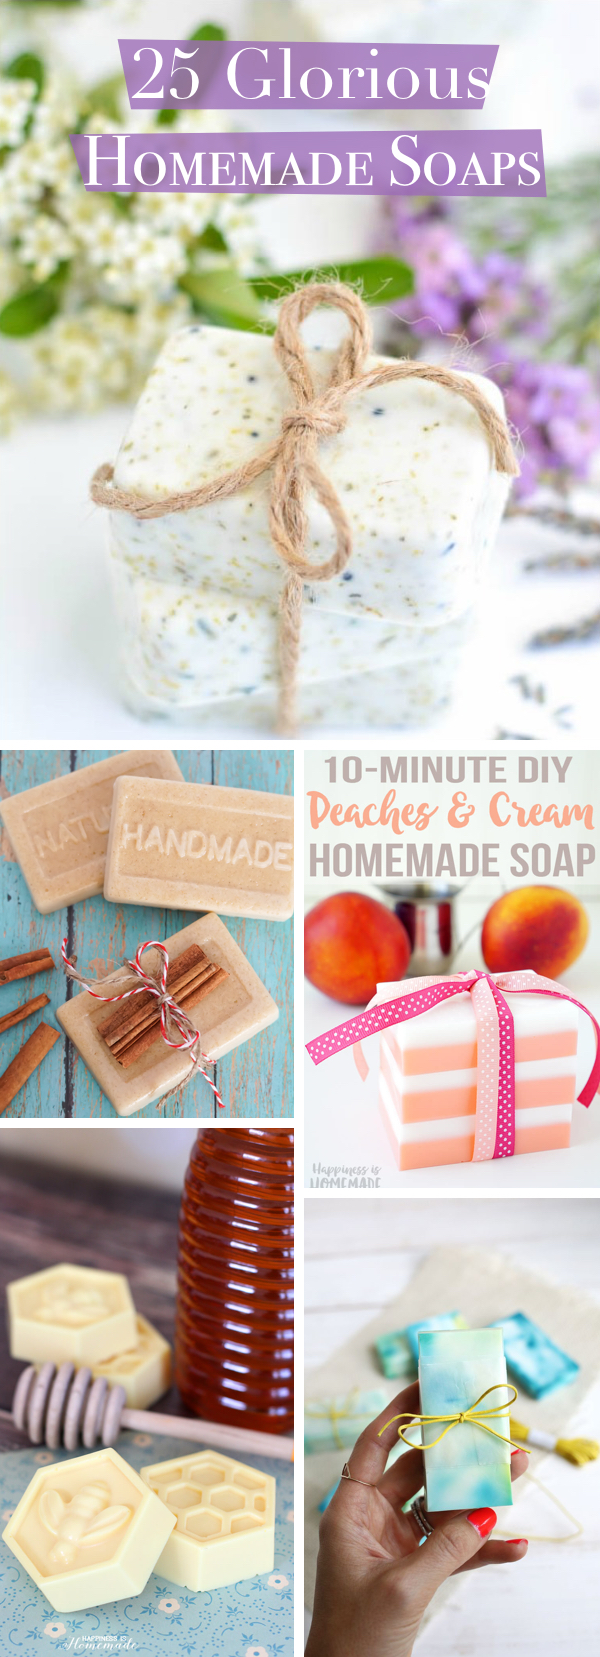 25 Glorious Homemade Soaps That Are a Complete Treat for Your Skin!